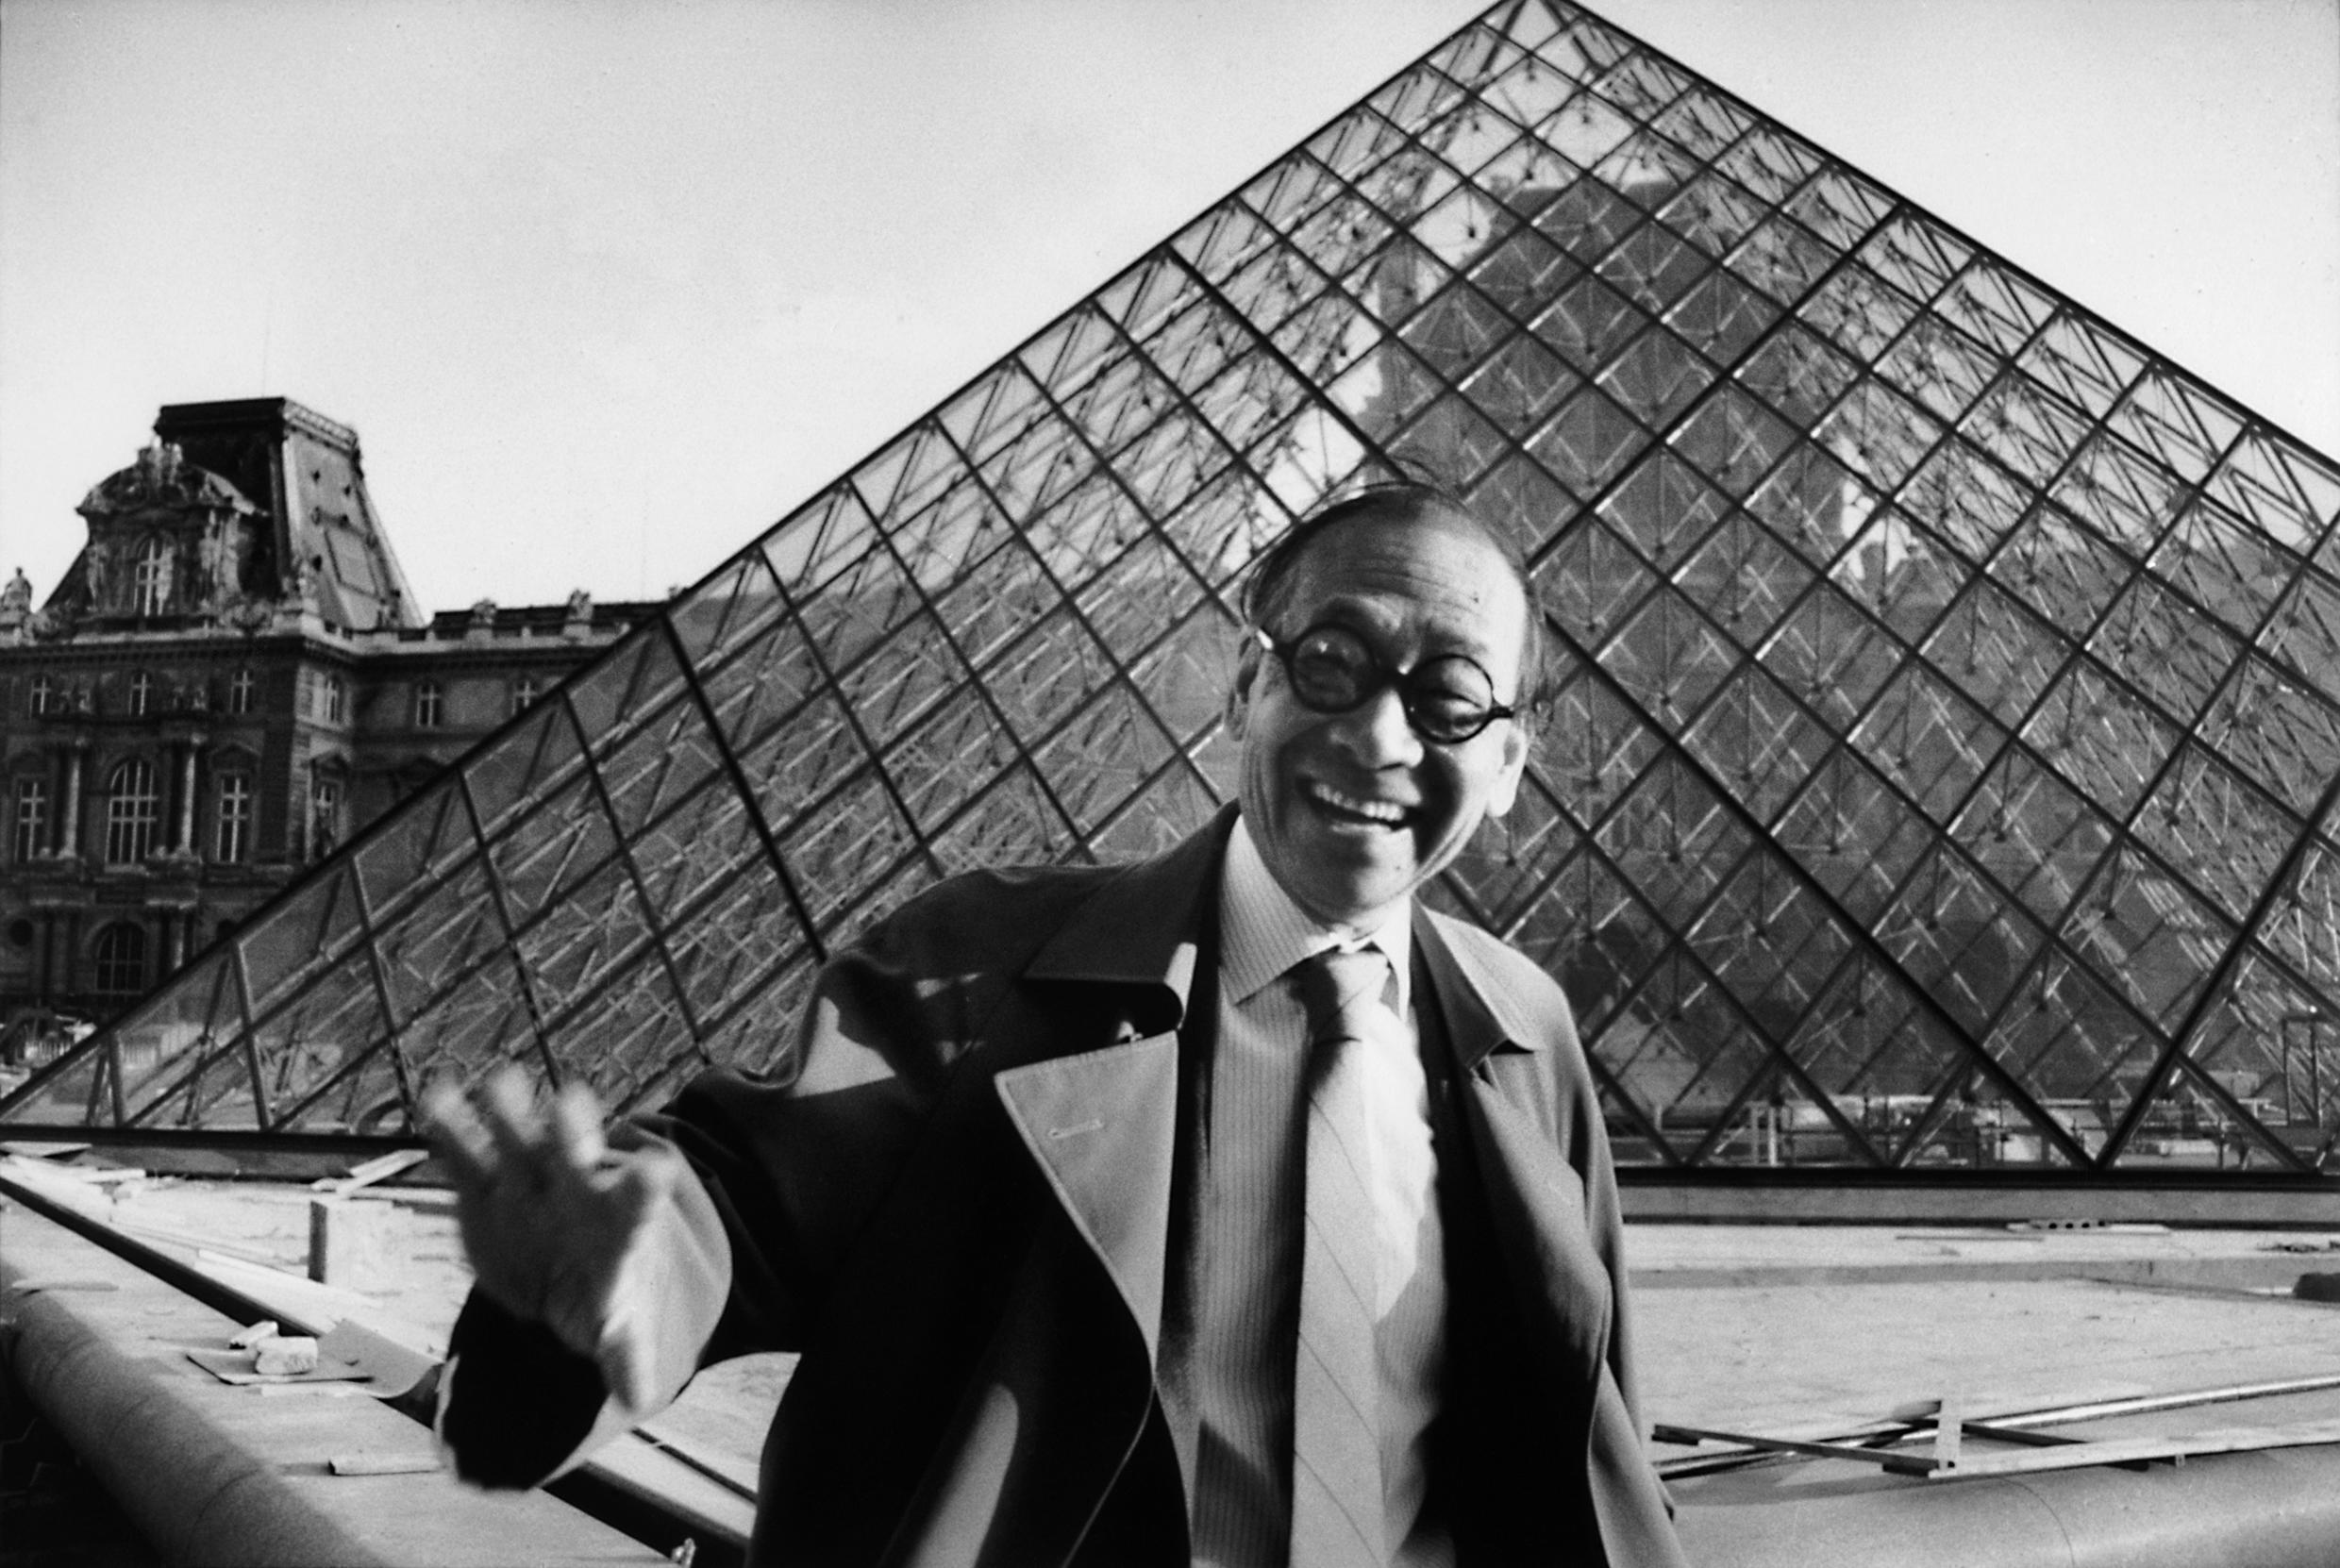 Chinese-American architect Ieoh Ming Pei in front of the Louvre Pyramid in Paris